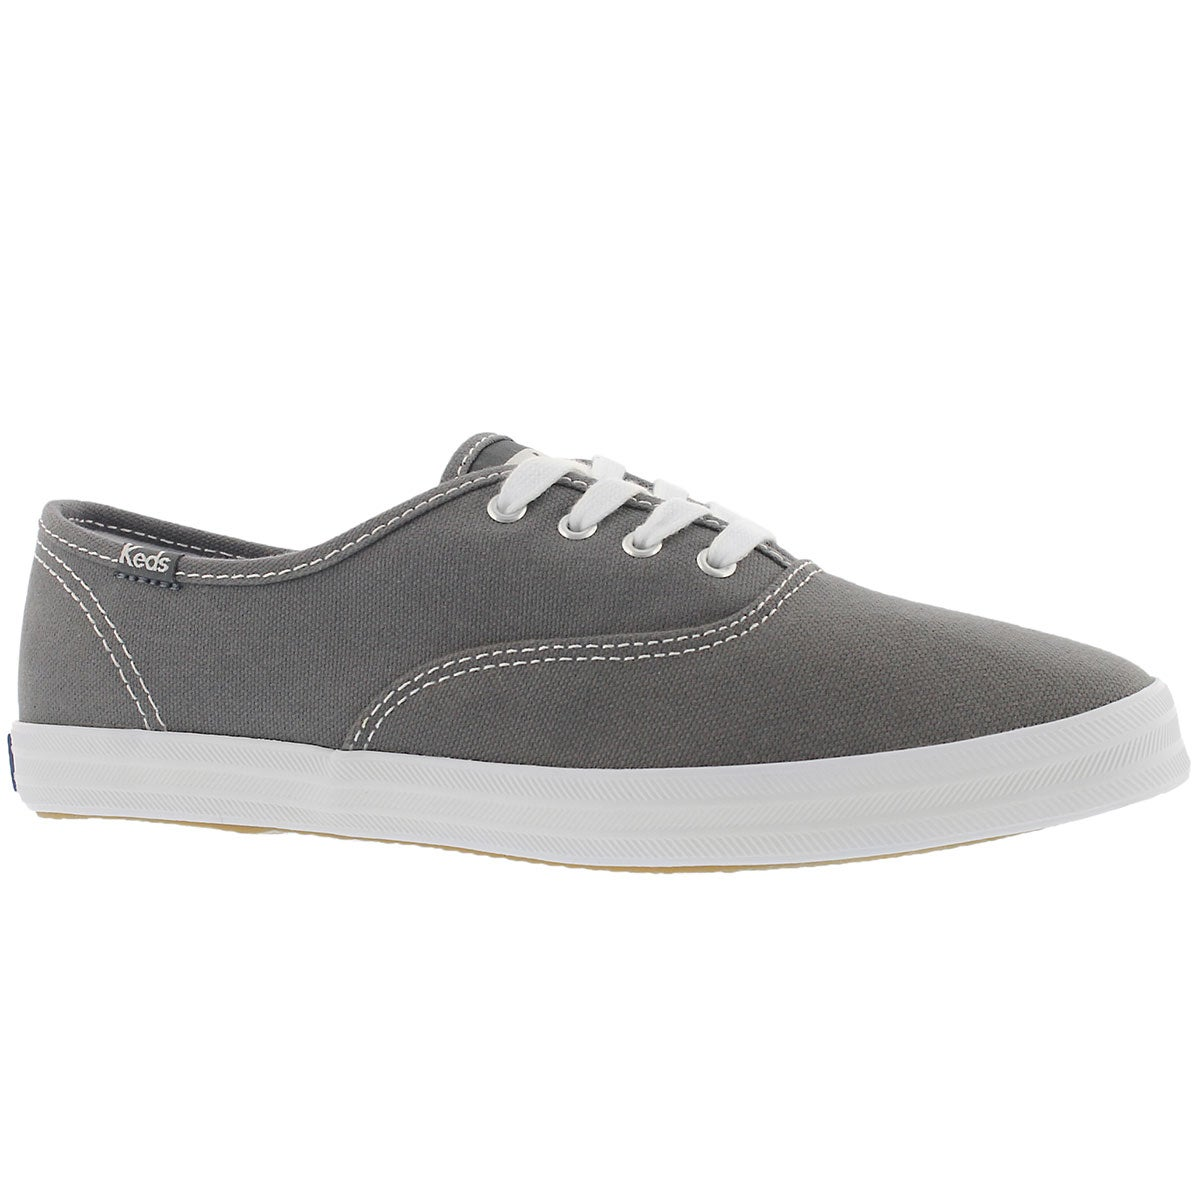 922aa2fb3a96c Keds Women s CHAMPION grey canvas CVO sneaker